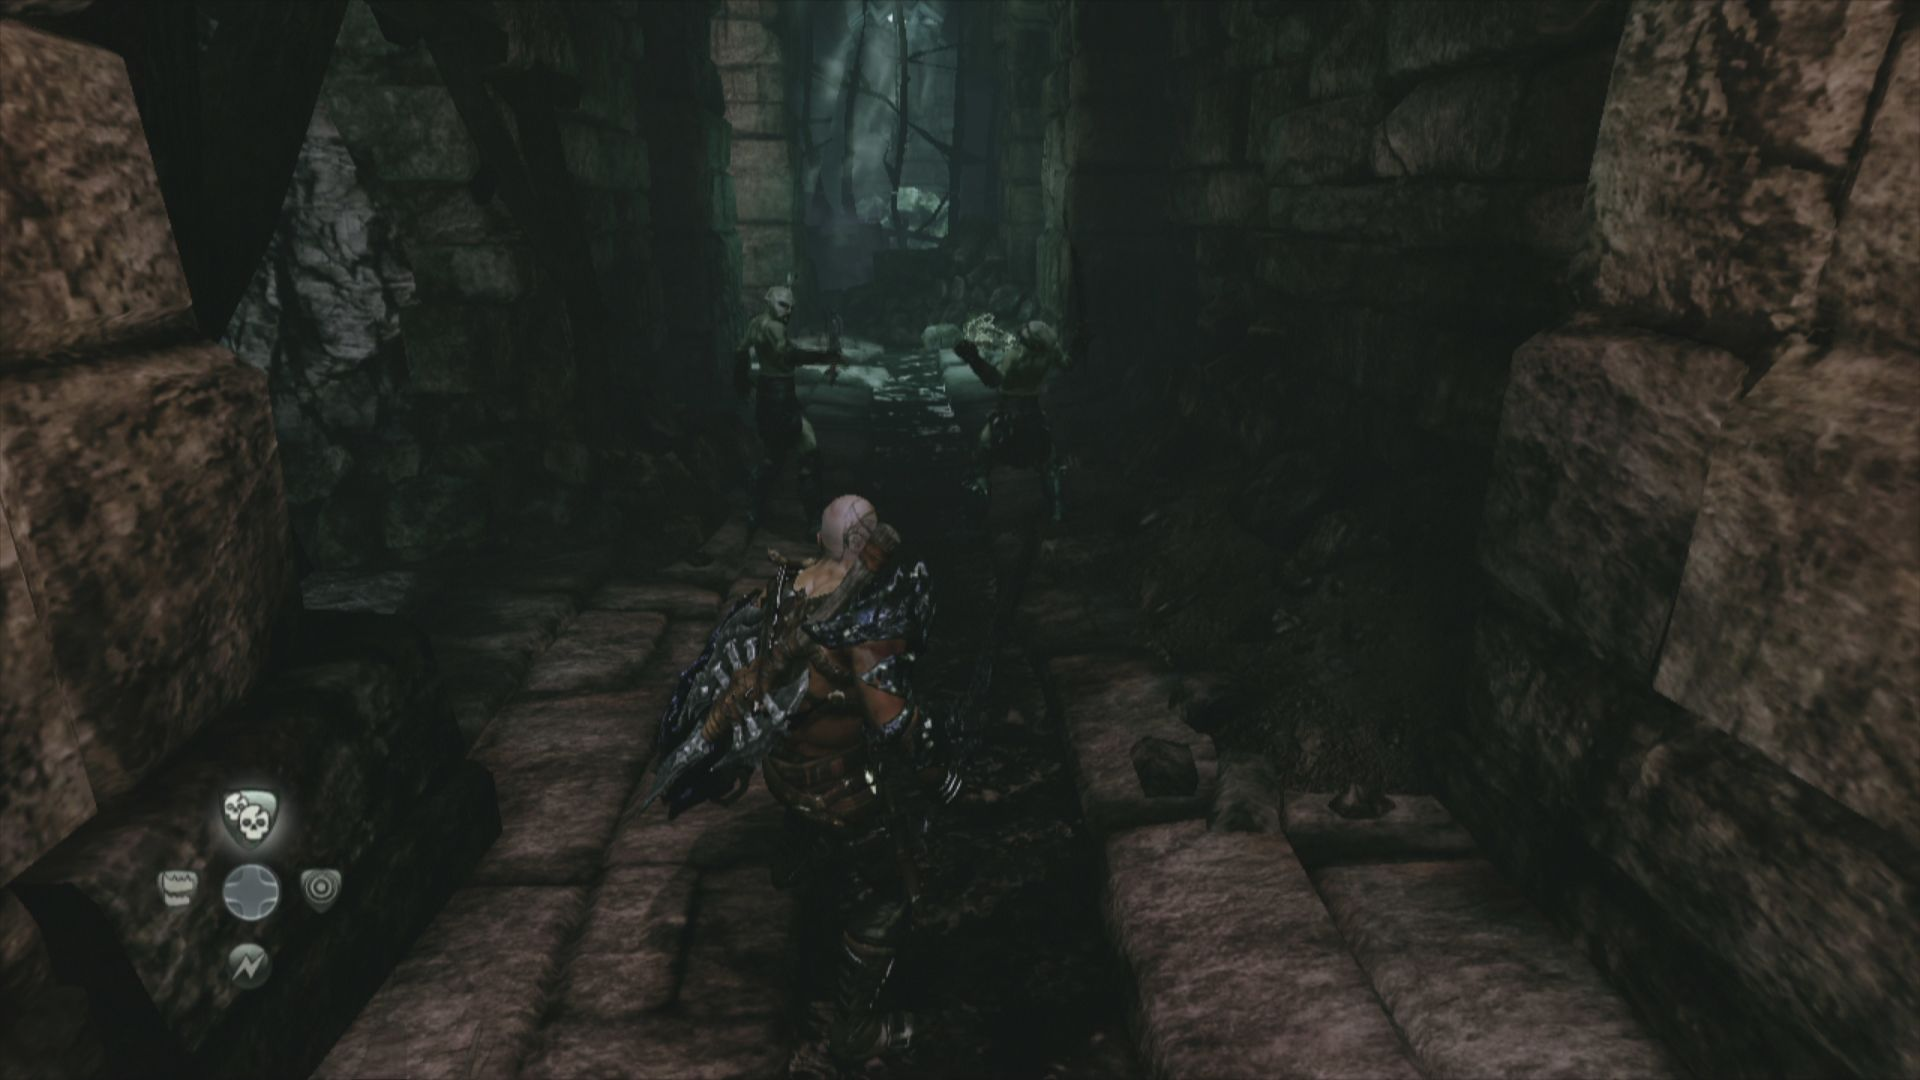 Hunted: The Demon's Forge Xbox 360 Surprising two enemies